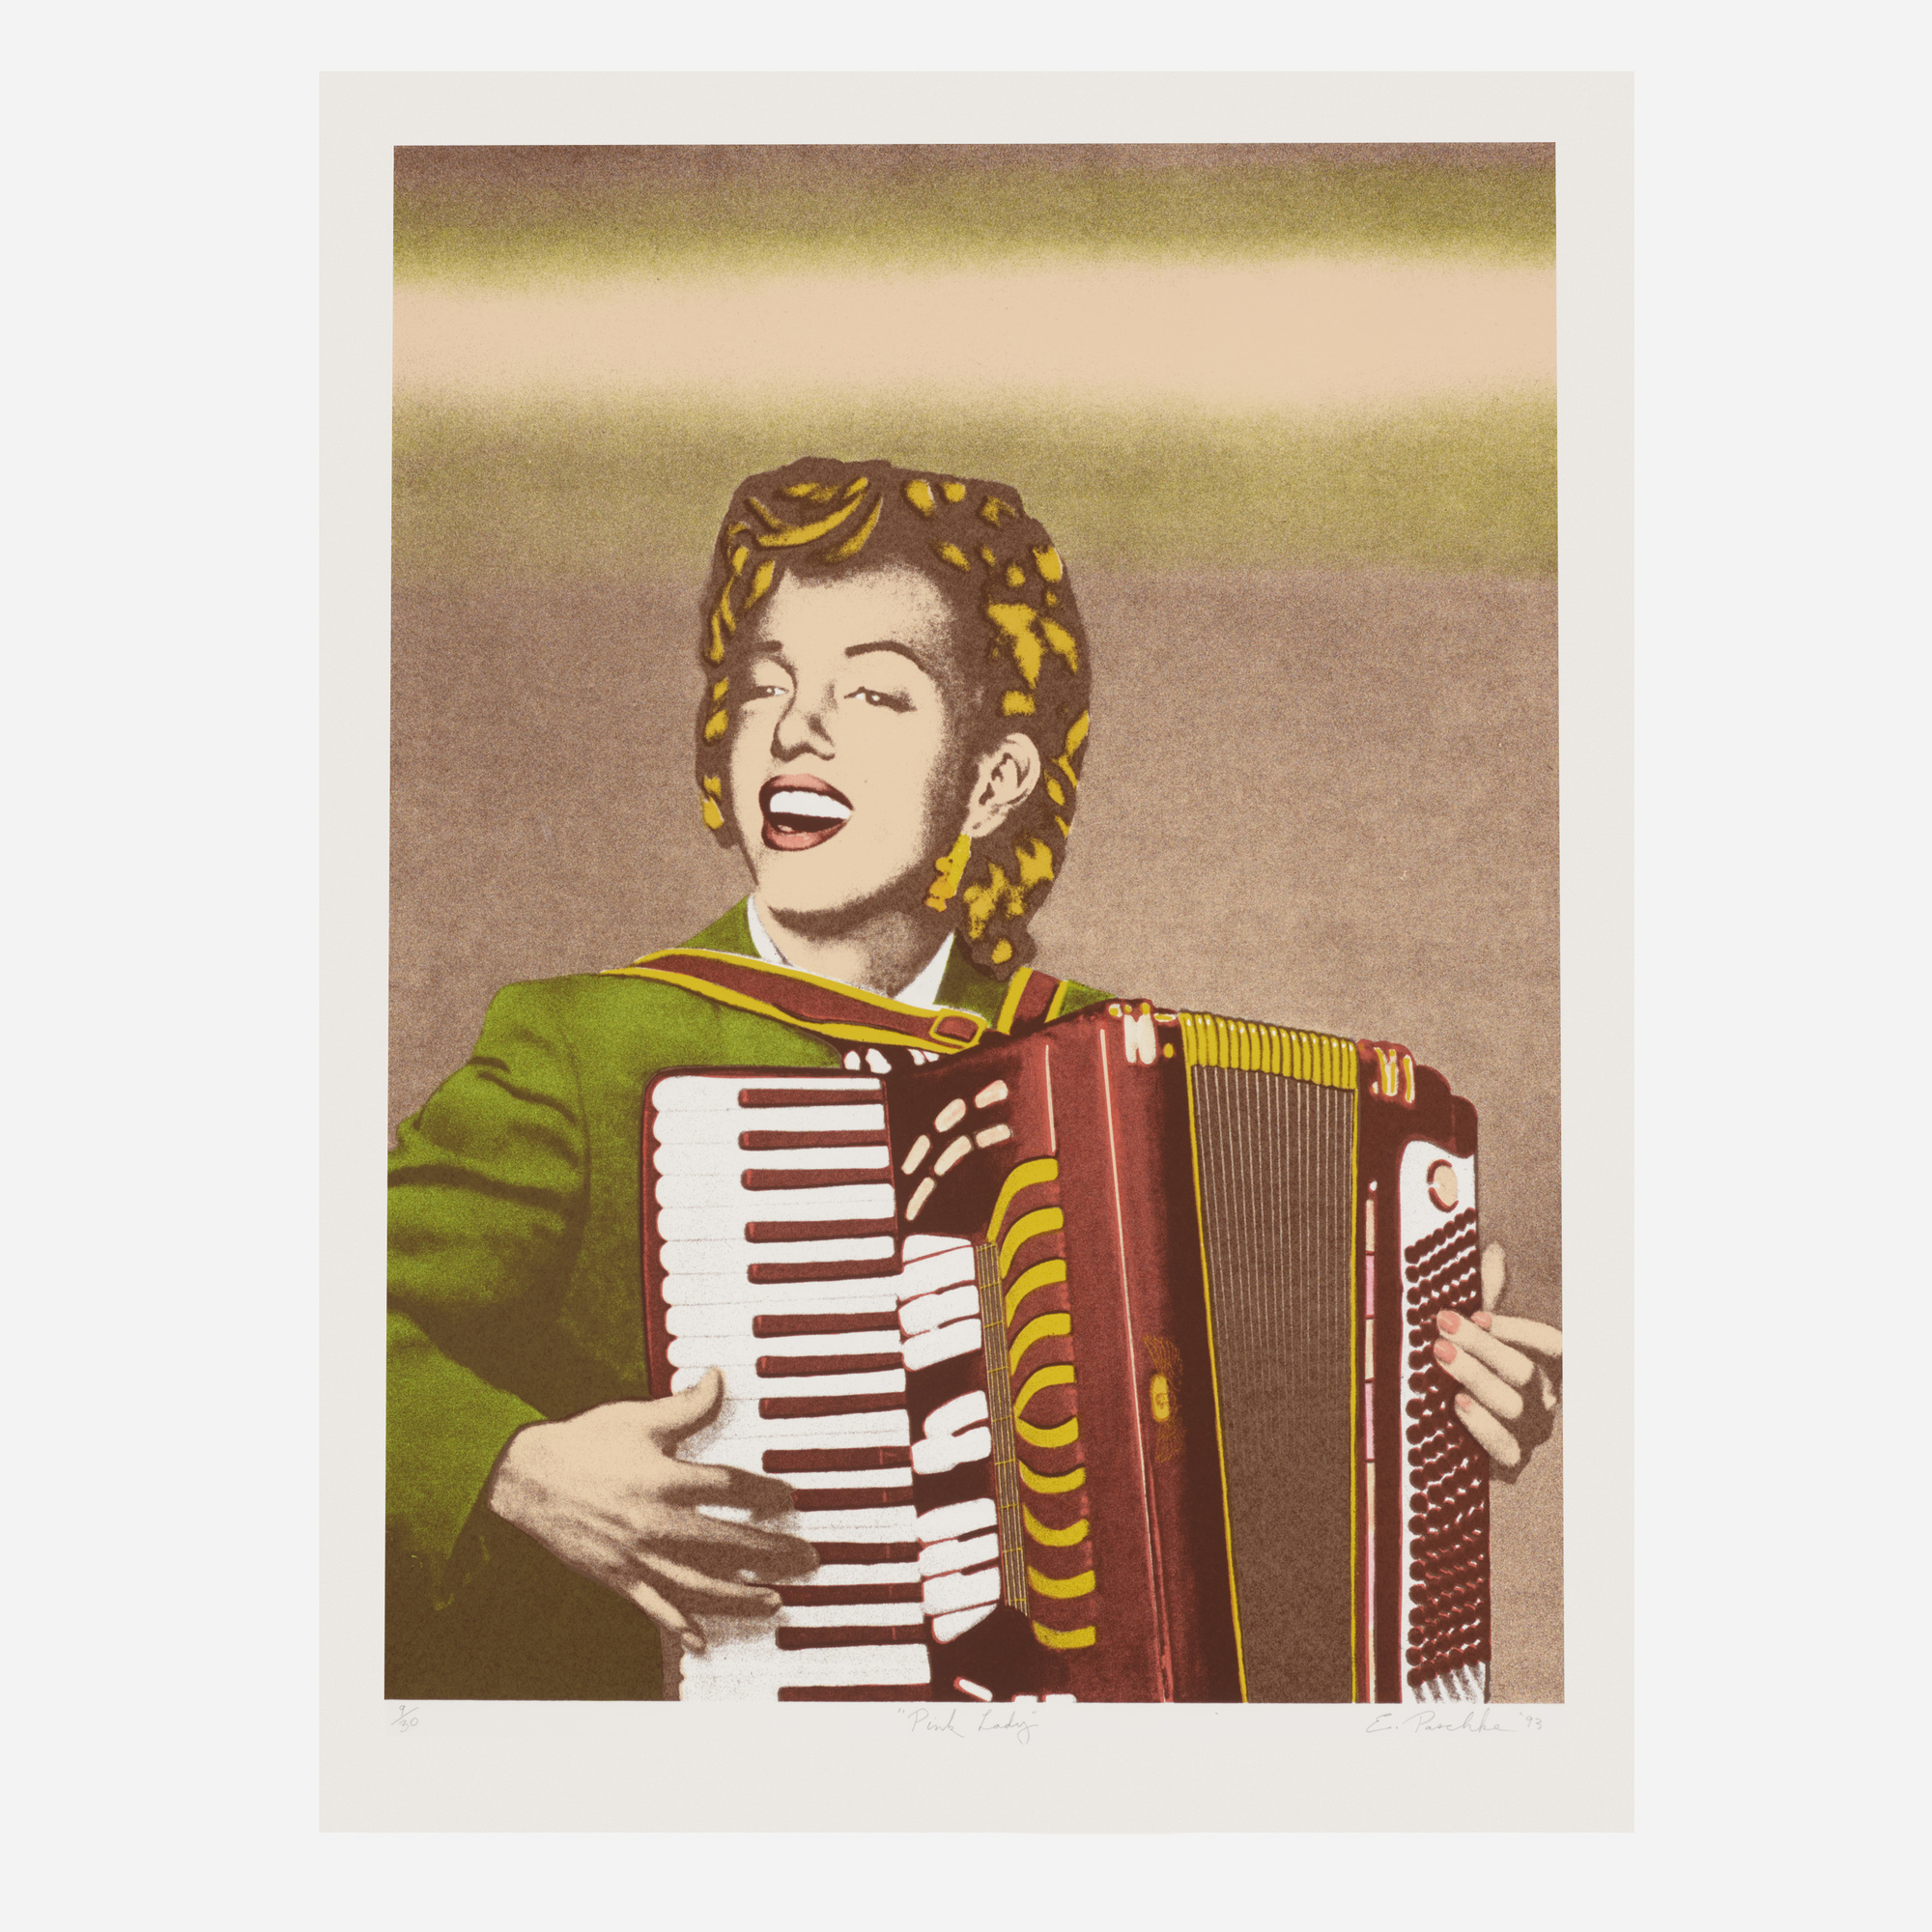 146: Ed Paschke / Pink Lady (1 of 1)